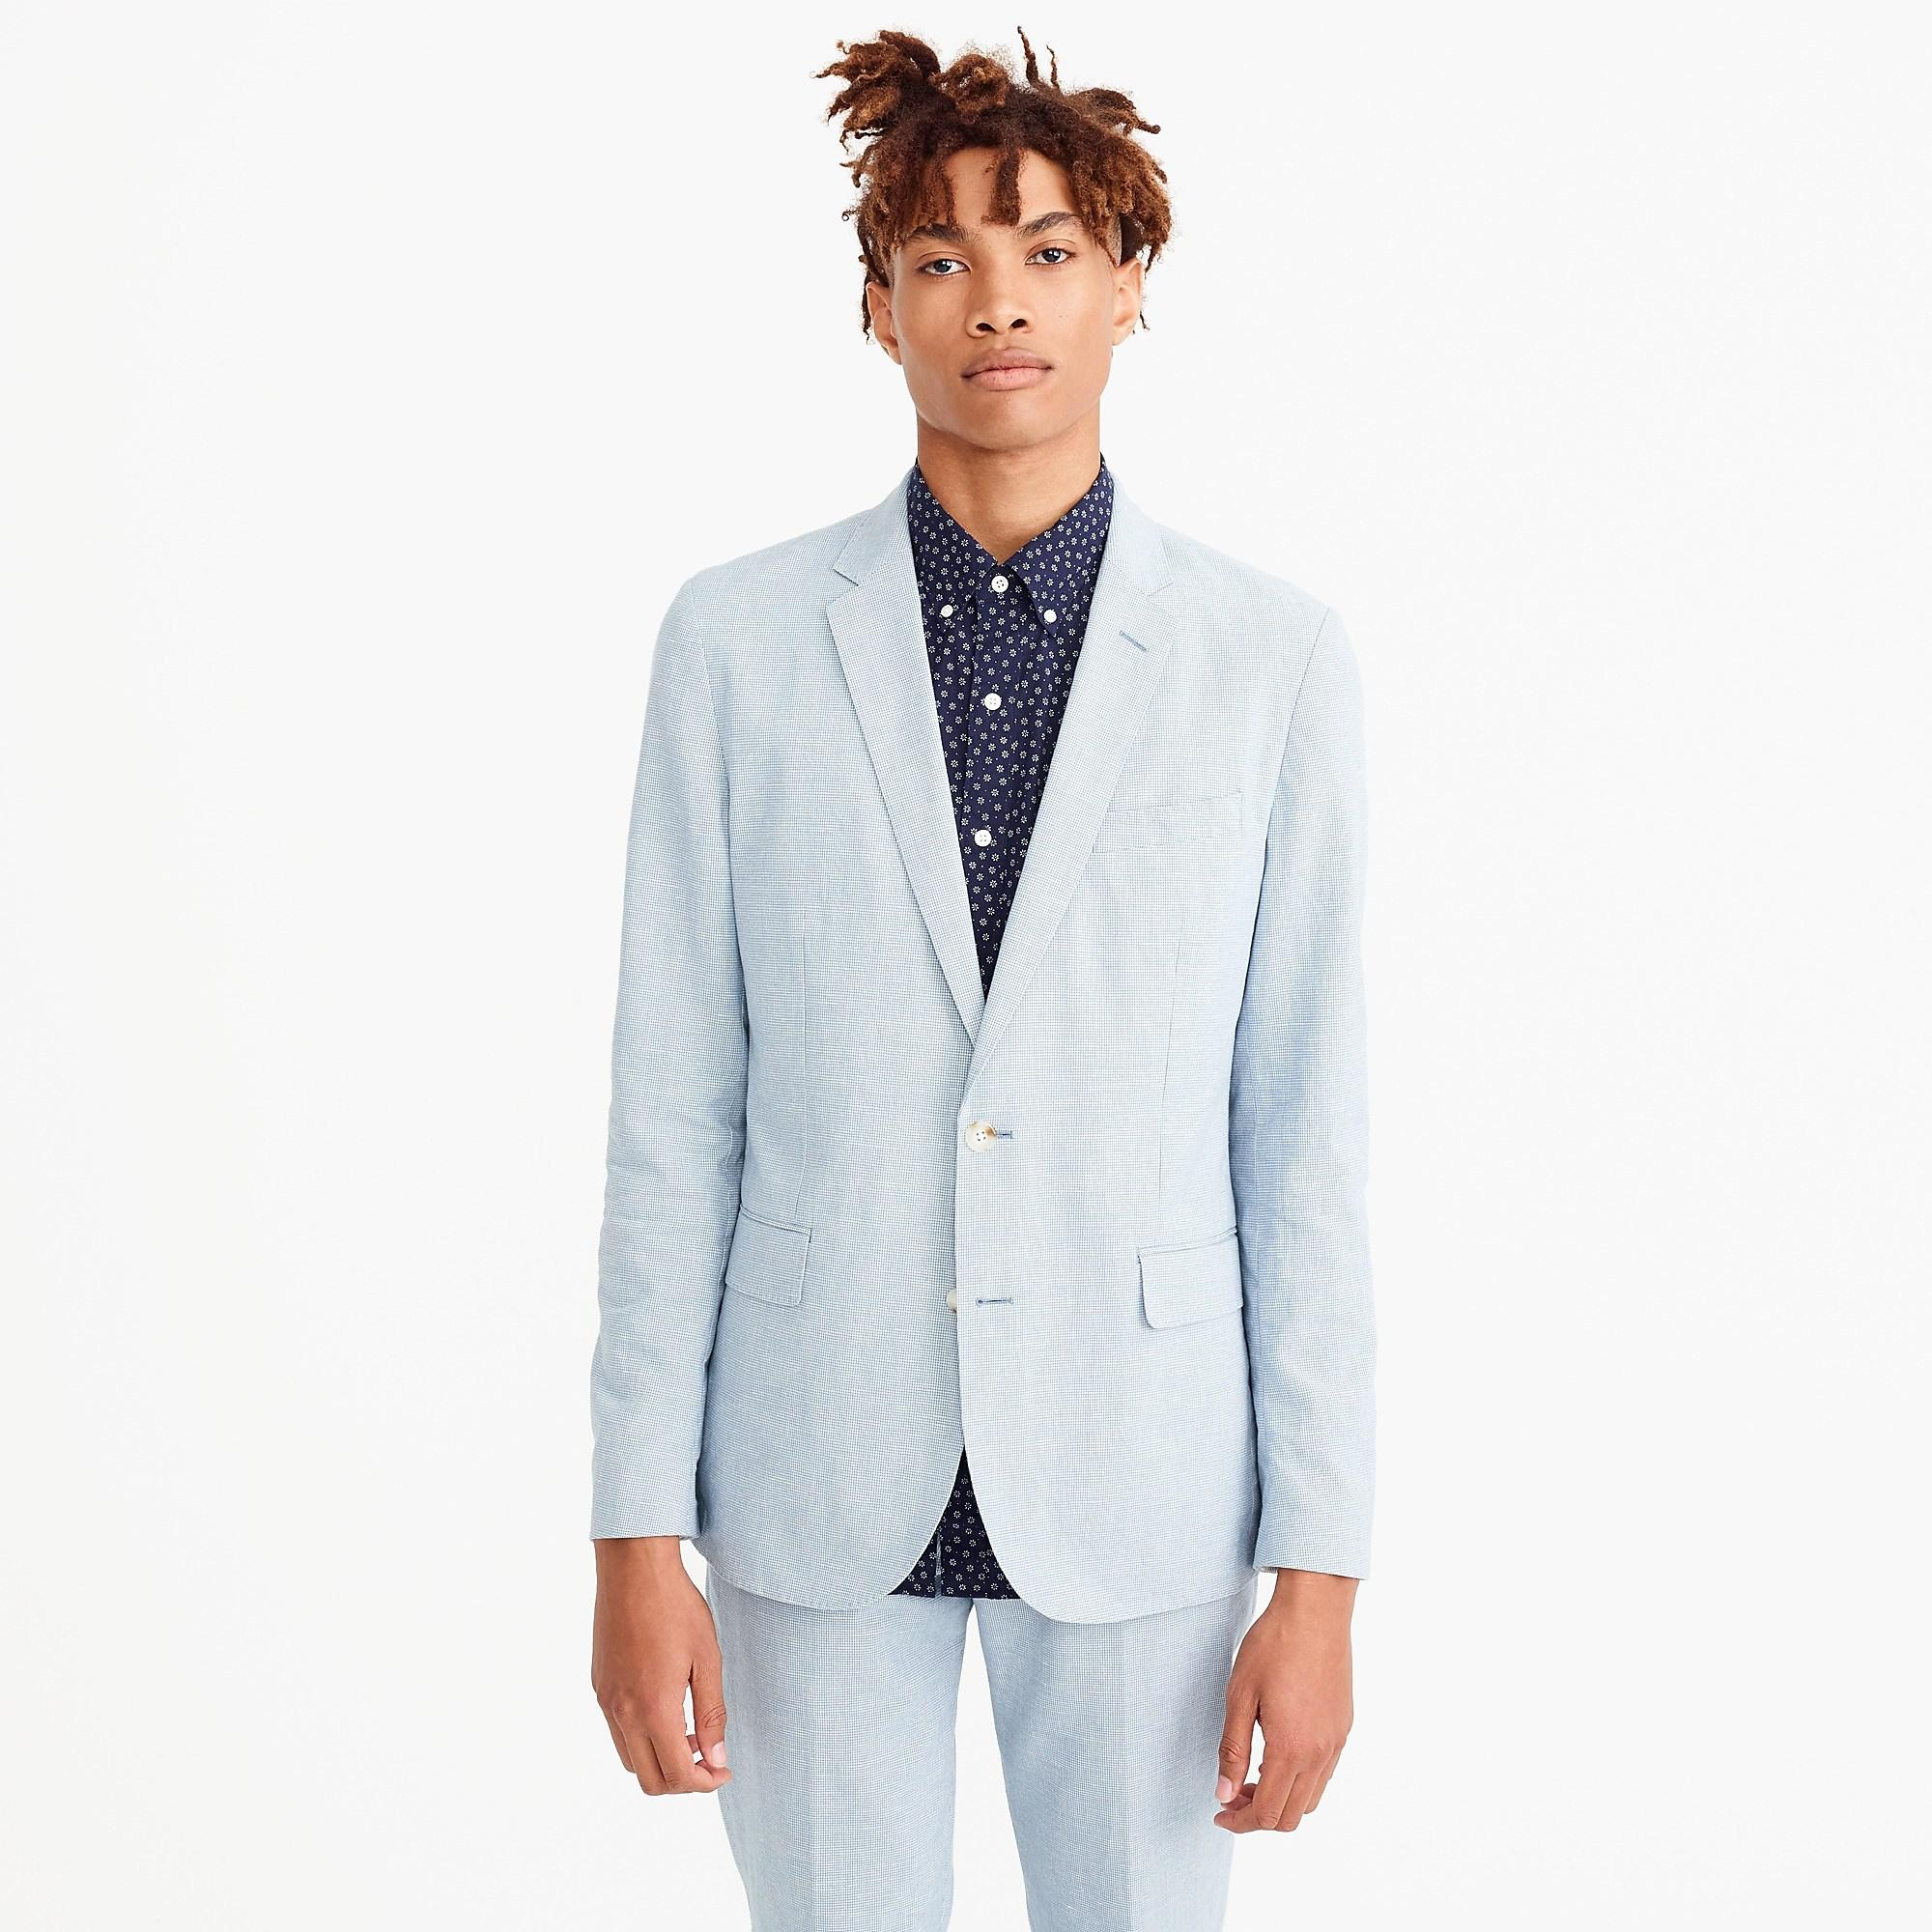 592d0443a J.Crew Blue Ludlow Slim-fit Unstructured Suit Jacket In Houndstooth  Cotton-linen for men